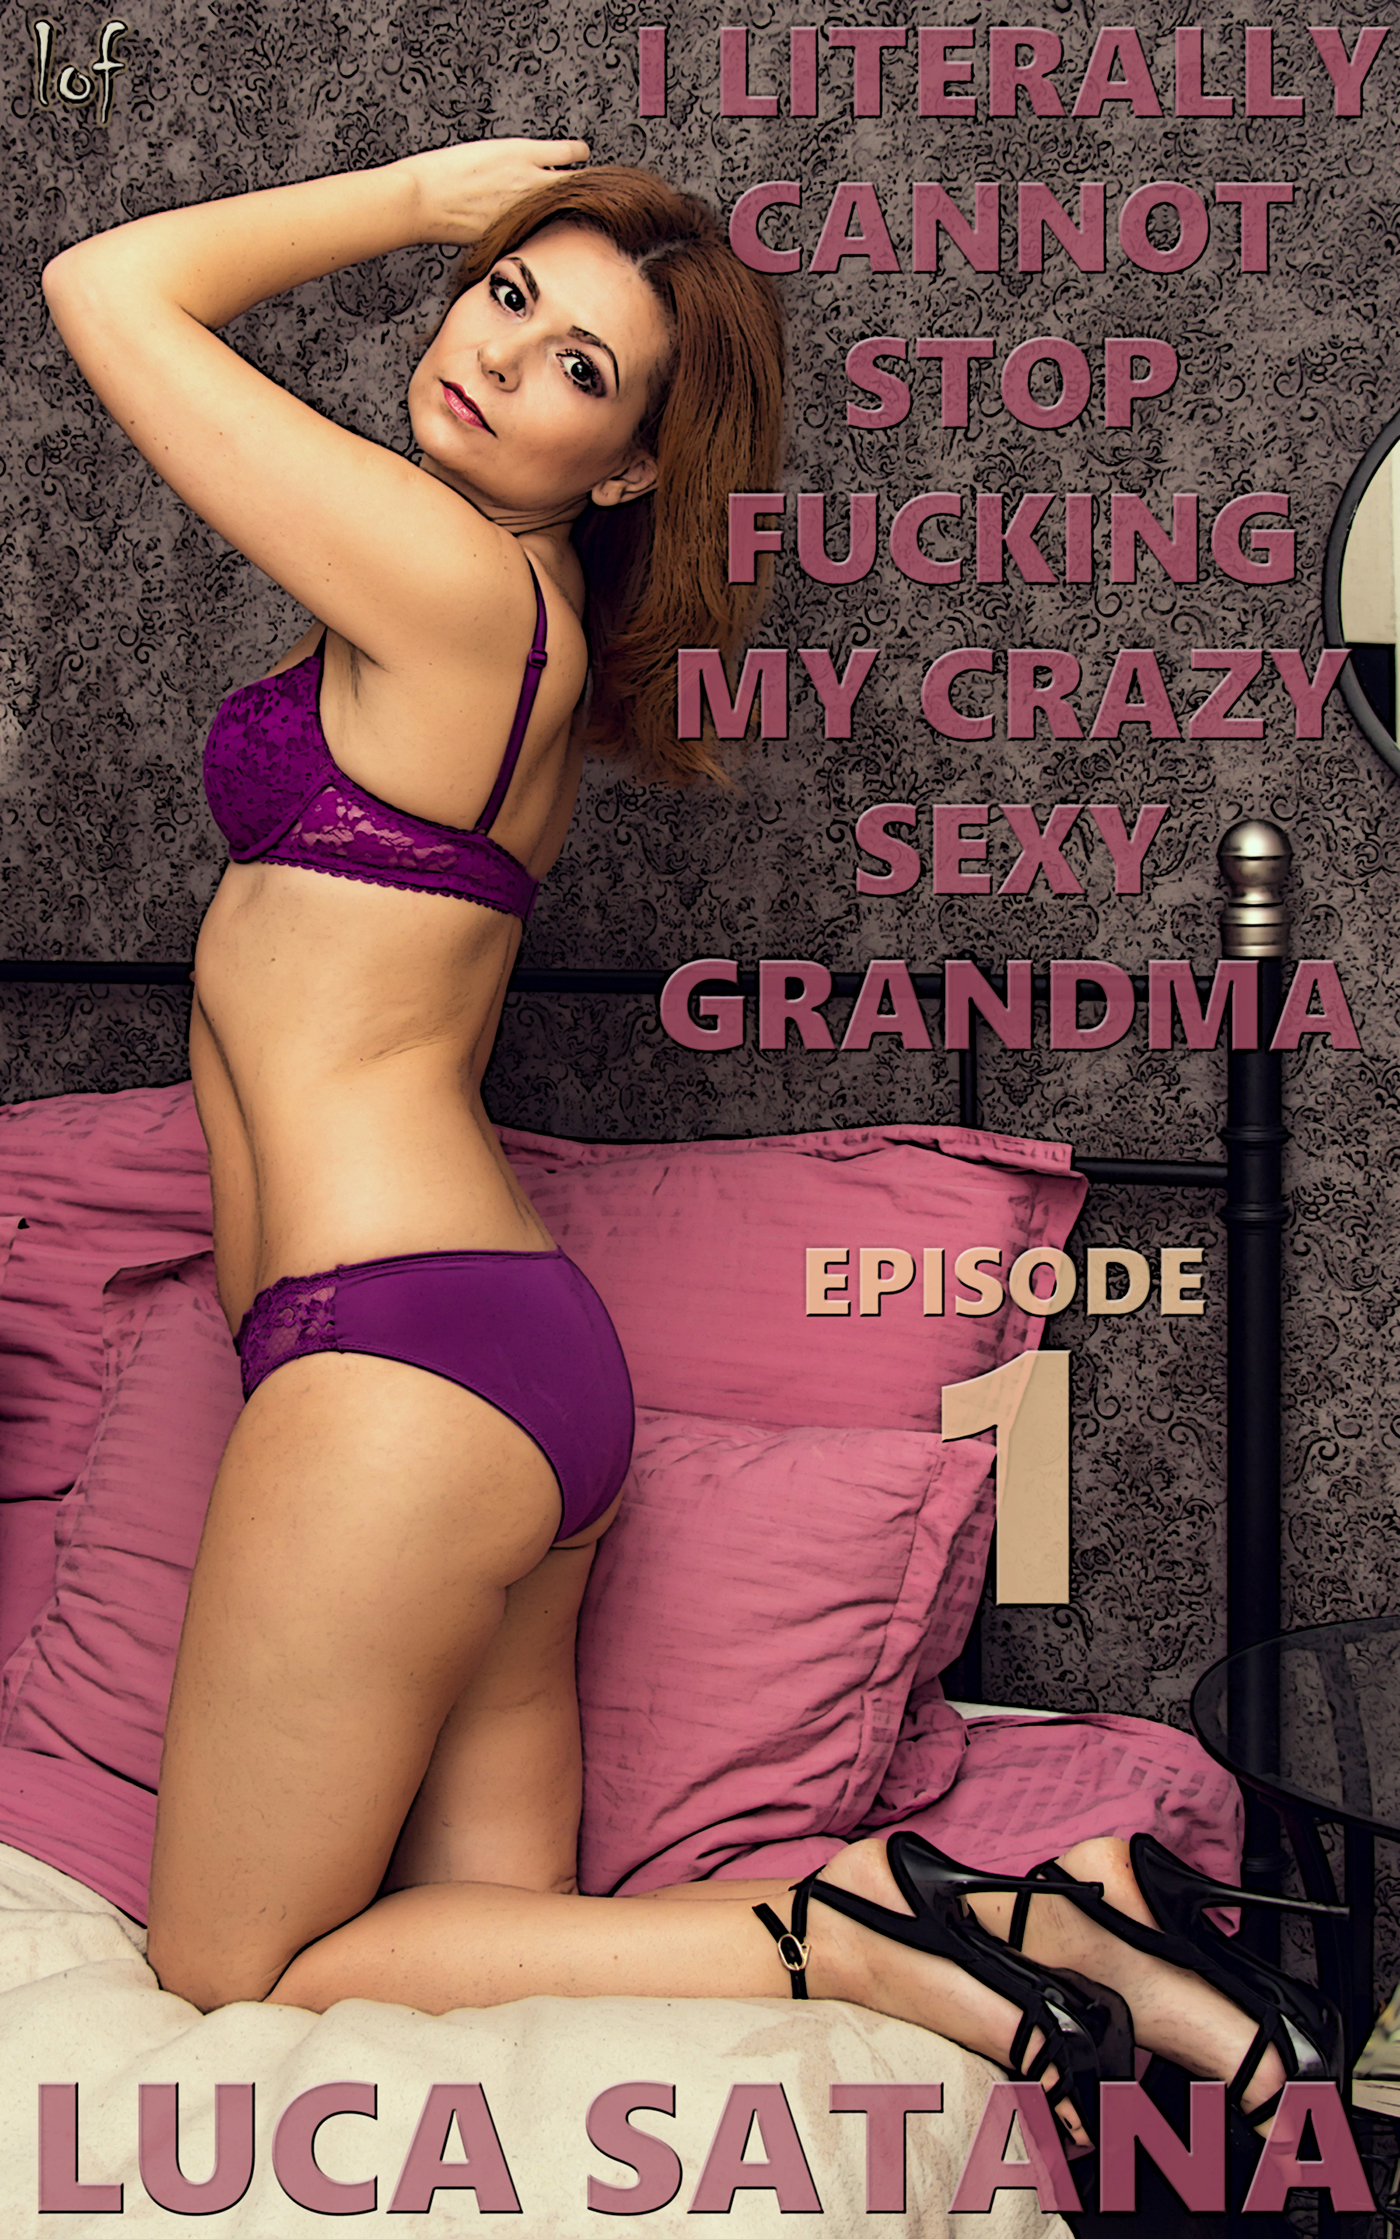 I Literally Cannot Stop Fucking My Crazy Sexy Grandma: Episode 1